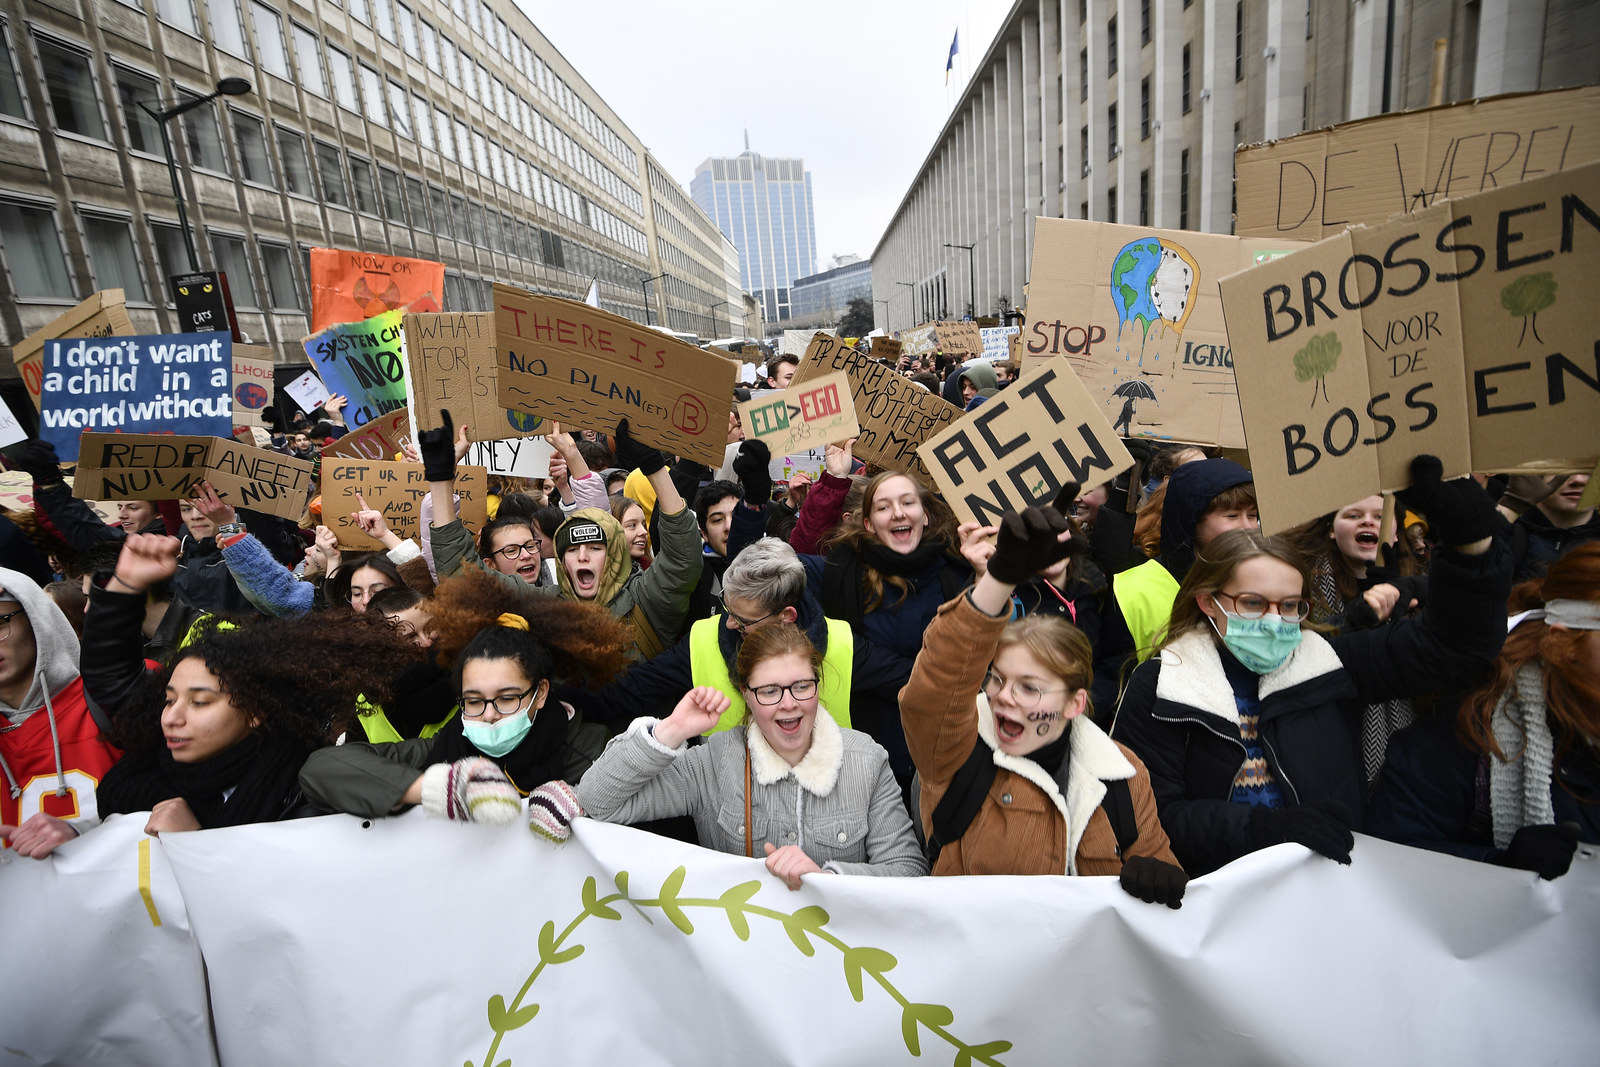 Europe Climate Change Protests: Teenage Girls Organize Mass School Walkouts And Protests